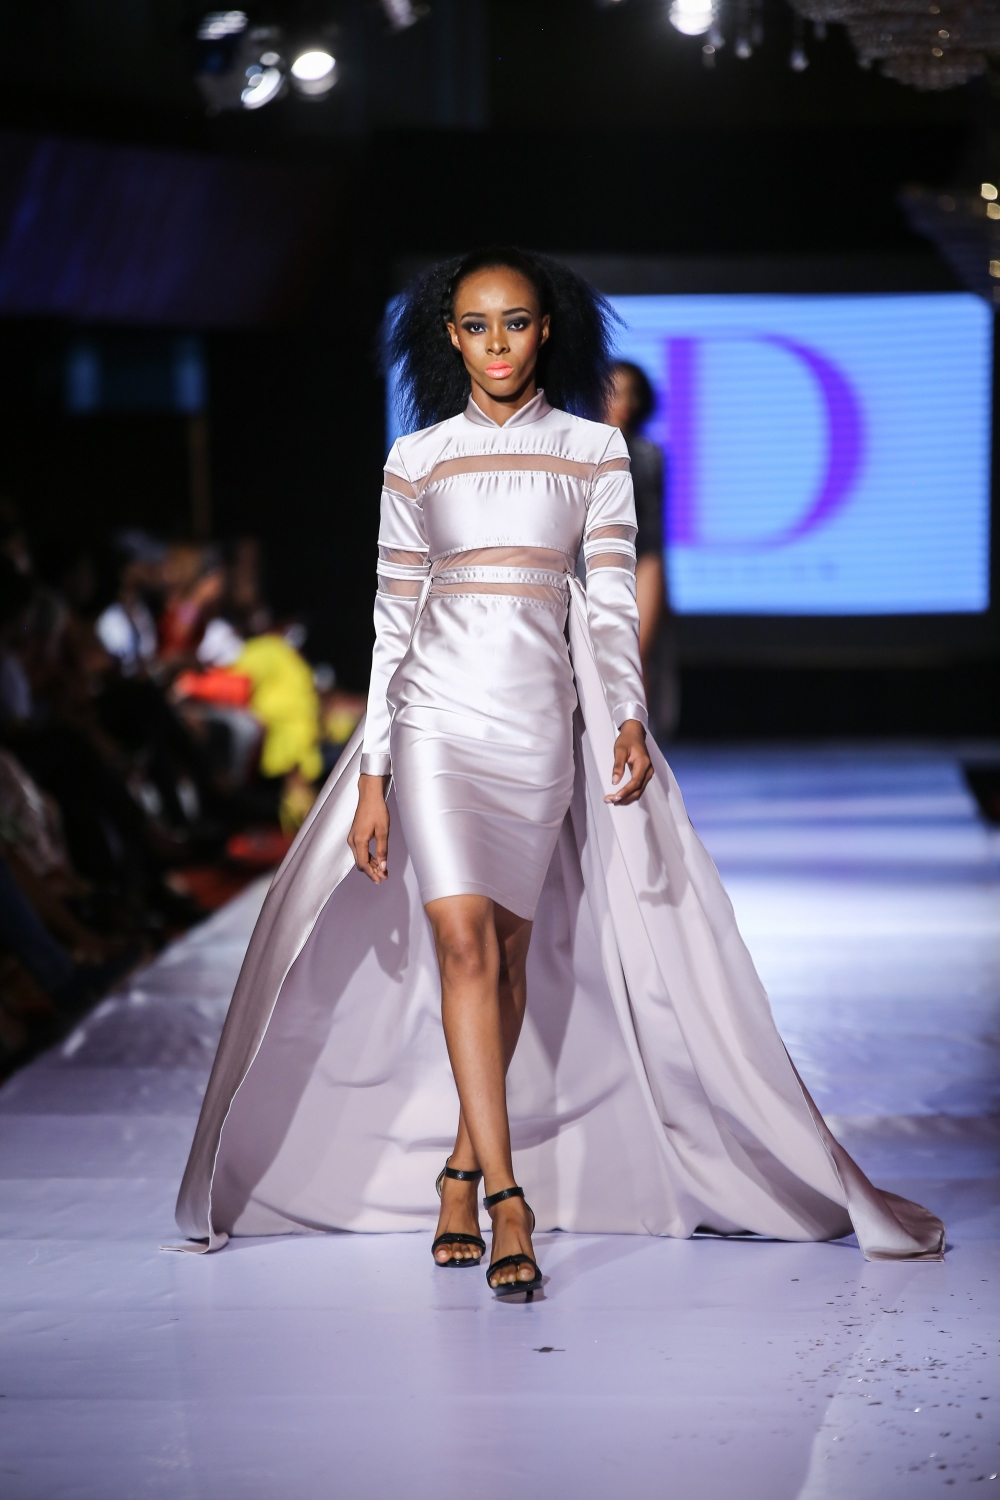 #AFWN17 | Africa Fashion Week Nigeria DAY 2: Eve Designs